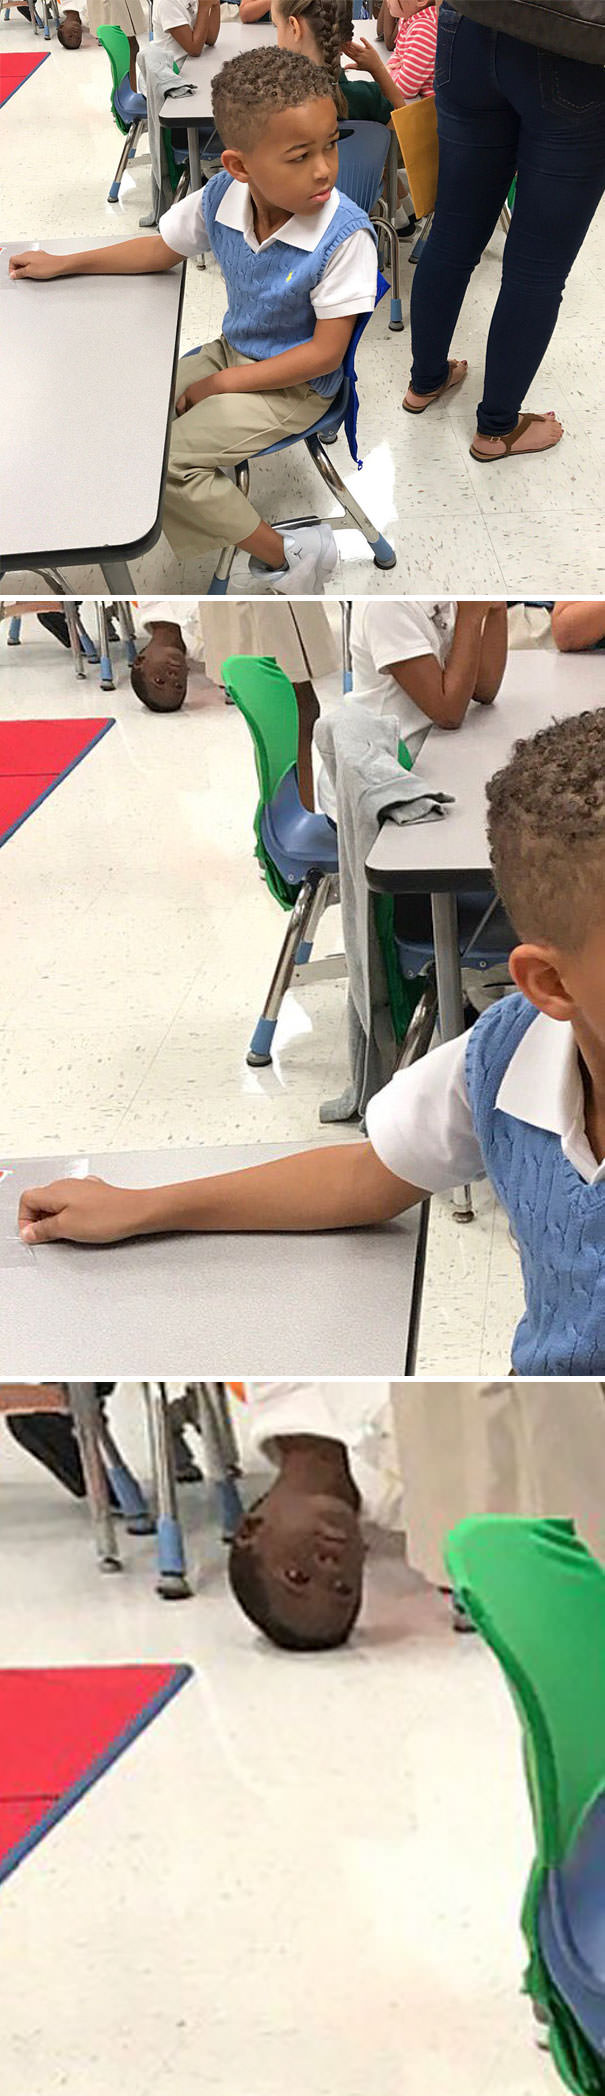 My Sister Was Taking Pictures Of My Nephew At School And The Little Guy In The Back Looks Miserable